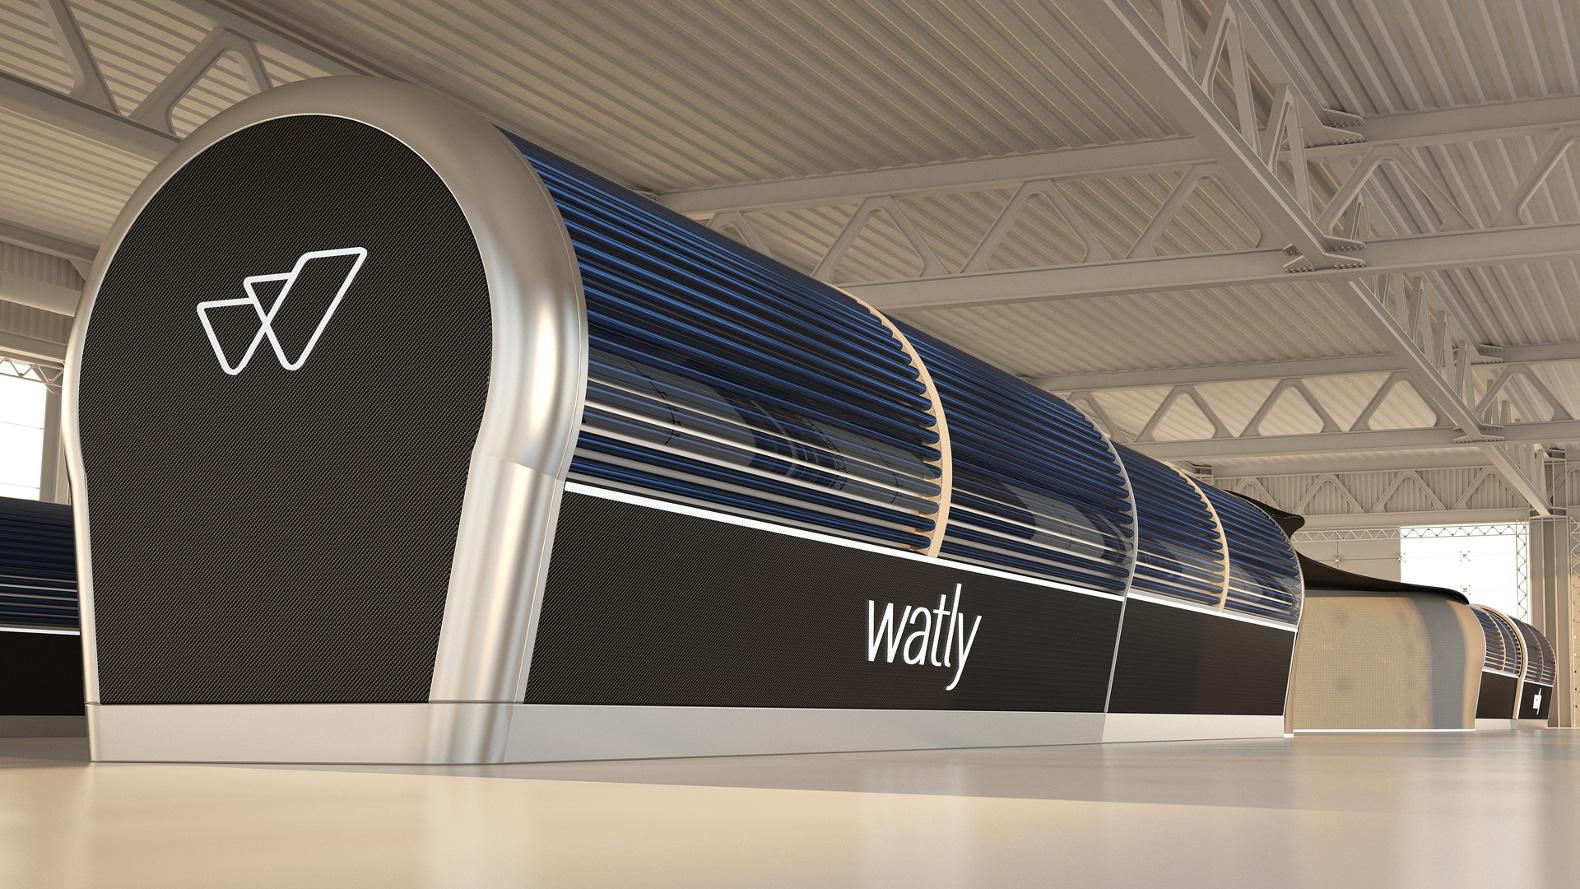 Solar-powered Watly provides internet, energy, and drinking water for Ghana residents